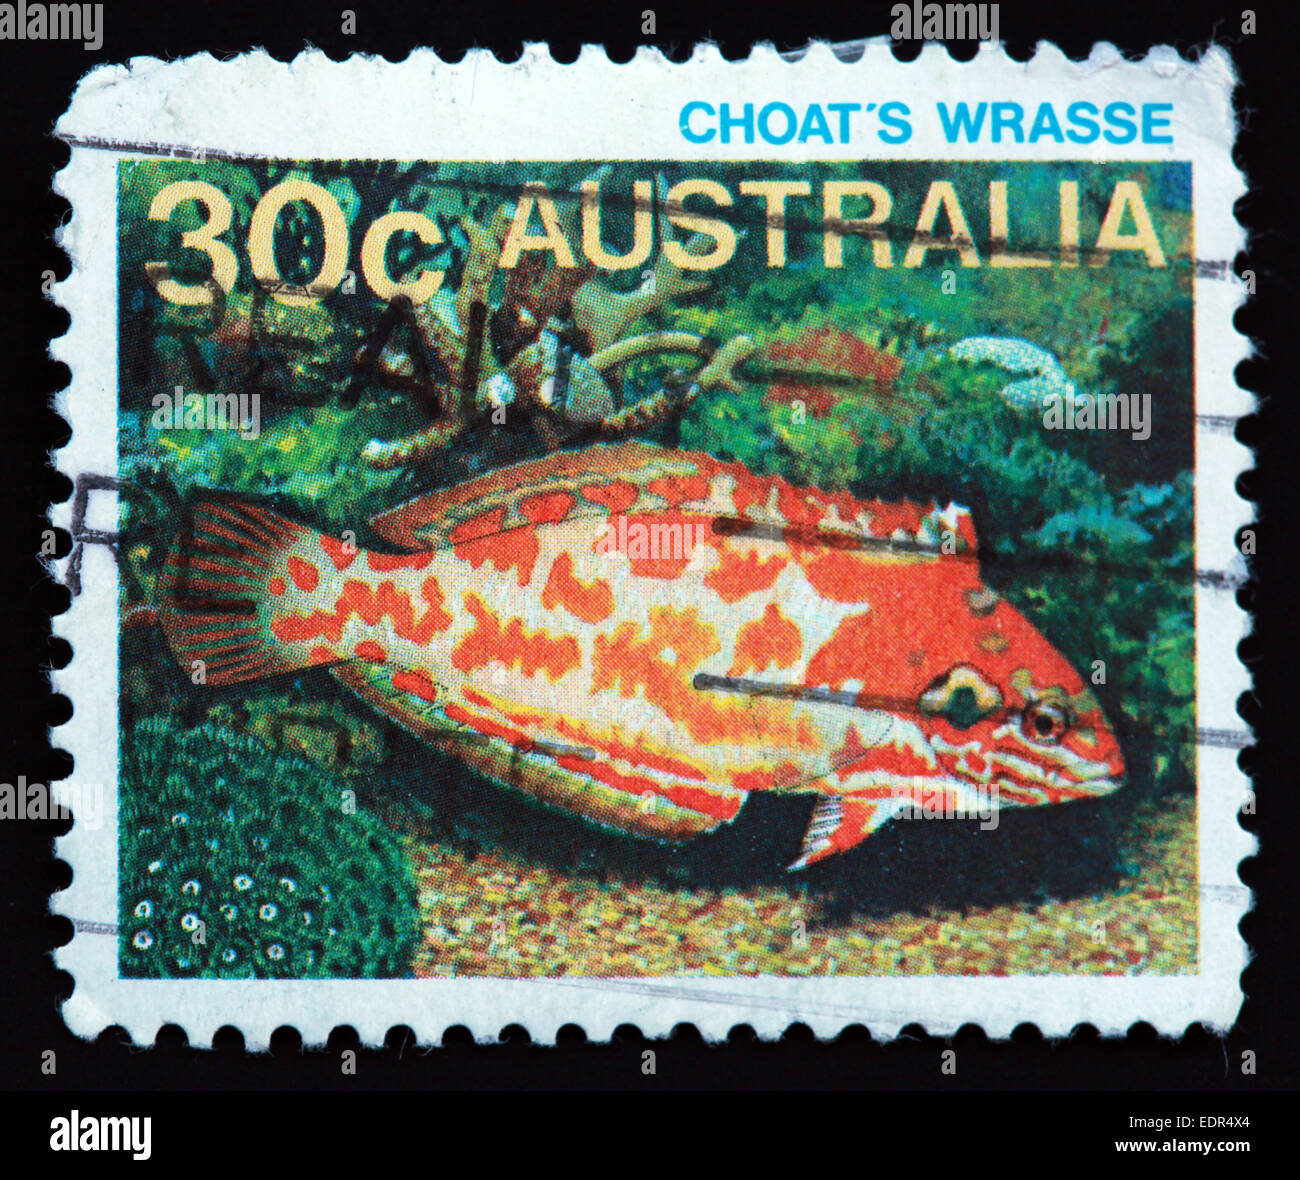 Choat,Australia,orange,fish,orange fish,wildlife,animal,animals,Used and Postmarked,Used,and,postmarked,perforated,Australia,stamp,Used,and,postmarked,Australia,Austrailian,Stamp,post,posting,mail,hobby,perforation,mark,postage,stamp,print,stamp,cancelled,stamp,payment,correspondence,Gotonysmith,post,posting,mail,hobby,perforation,mark,postage,stamp,print,stamp,cancelled,canceled,stamp,payment,correspondence,postman,collection,collector,philately,philatelist,letter,price,history,retro,Australian,Vintage,delivery,date,relationship,communication,Oz,Australia,DownUnder,classic rare unique Austrailian financial,investment,invest,value,British,empire,nation,canceled,printed on black background,close-up,closeup,close,up,sent,send,philately,mailing,shipping,postoffice,office,isolated,circa,special,colour,color,postmarked,marked,airmail,aged,antique,retro,cutting,historic,old,stamps,collection,stamp collection,album,Timbre,Sello,Stempel,Selo,Down Under,Black background